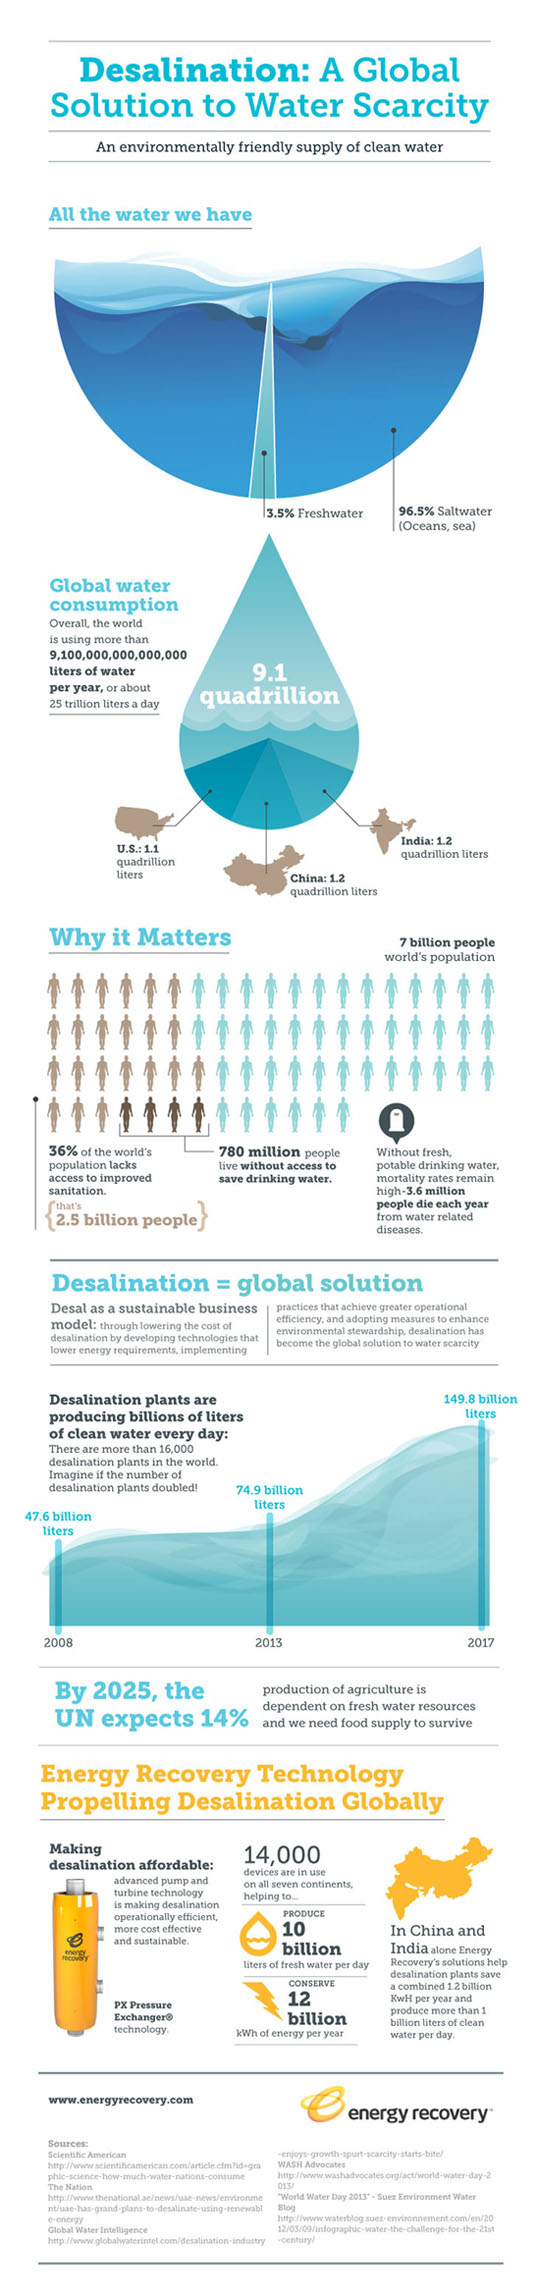 Infographic Energy Efficient Desalination Could Provide Clean Drinking Water For Those In Need Water Scarcity World Water World Water Day